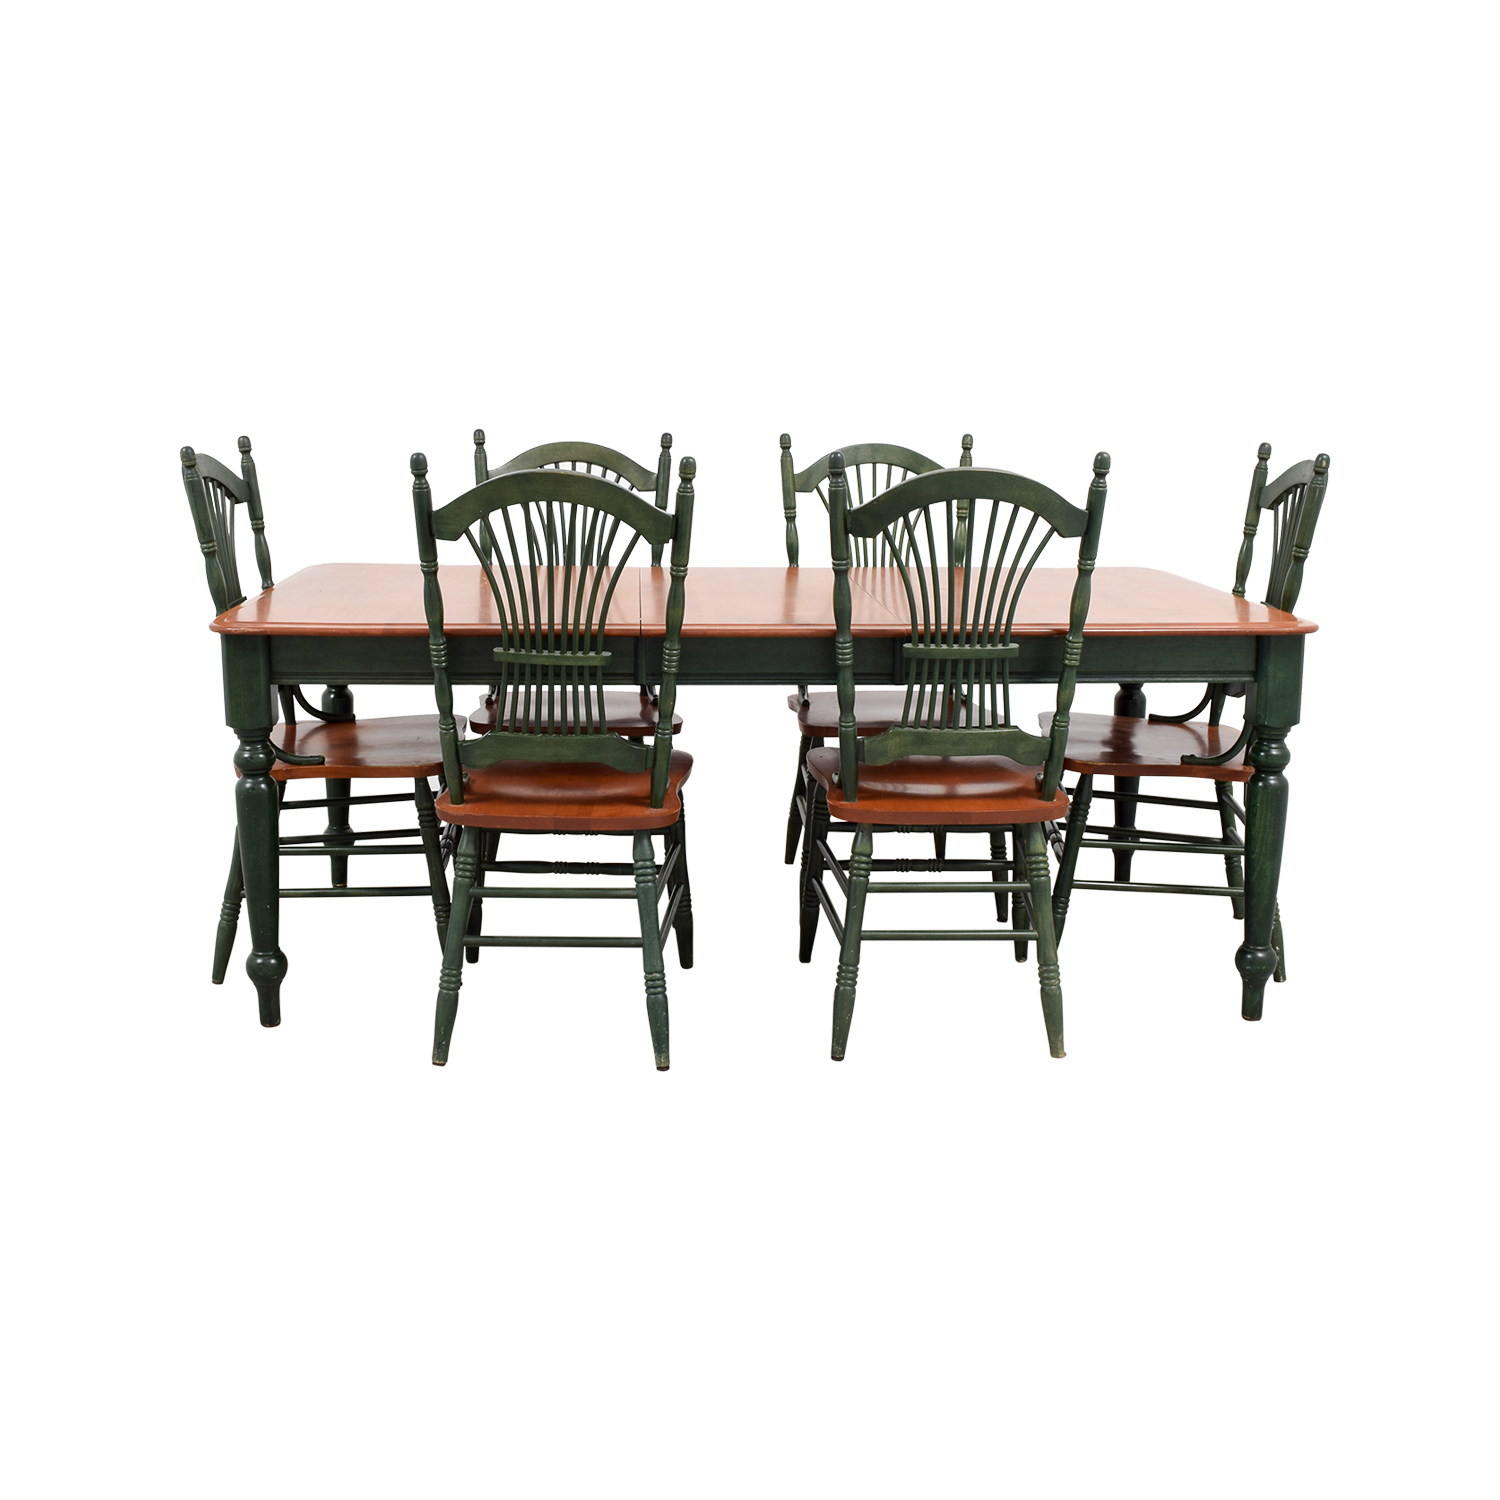 Dining Table with Extension Leaf and Green Chairs / Tables